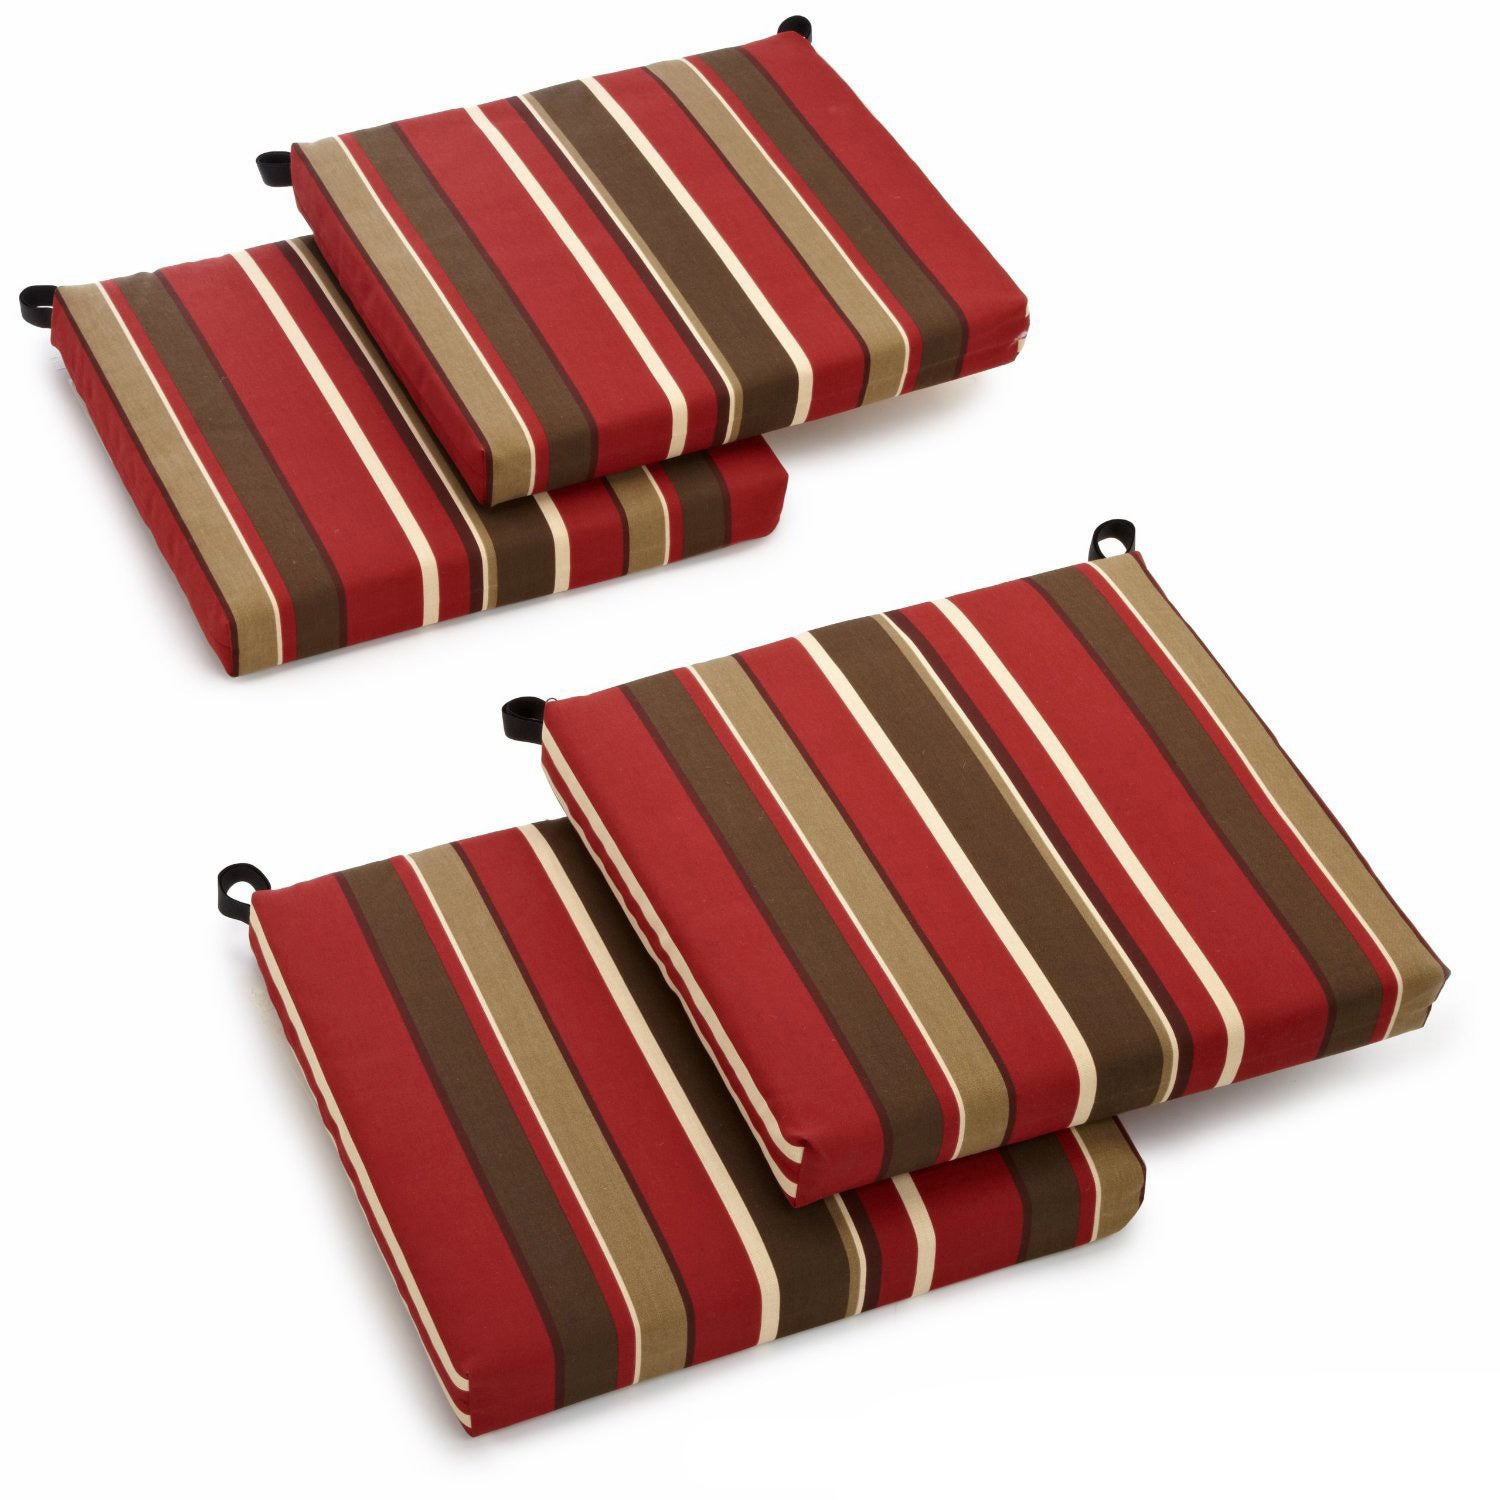 Blazing Needles All-weather Outdoor Patio Chair Cushion (Set of 4)  sc 1 st  Overstock.com & Shop Blazing Needles All-weather Outdoor Patio Chair Cushion (Set of ...